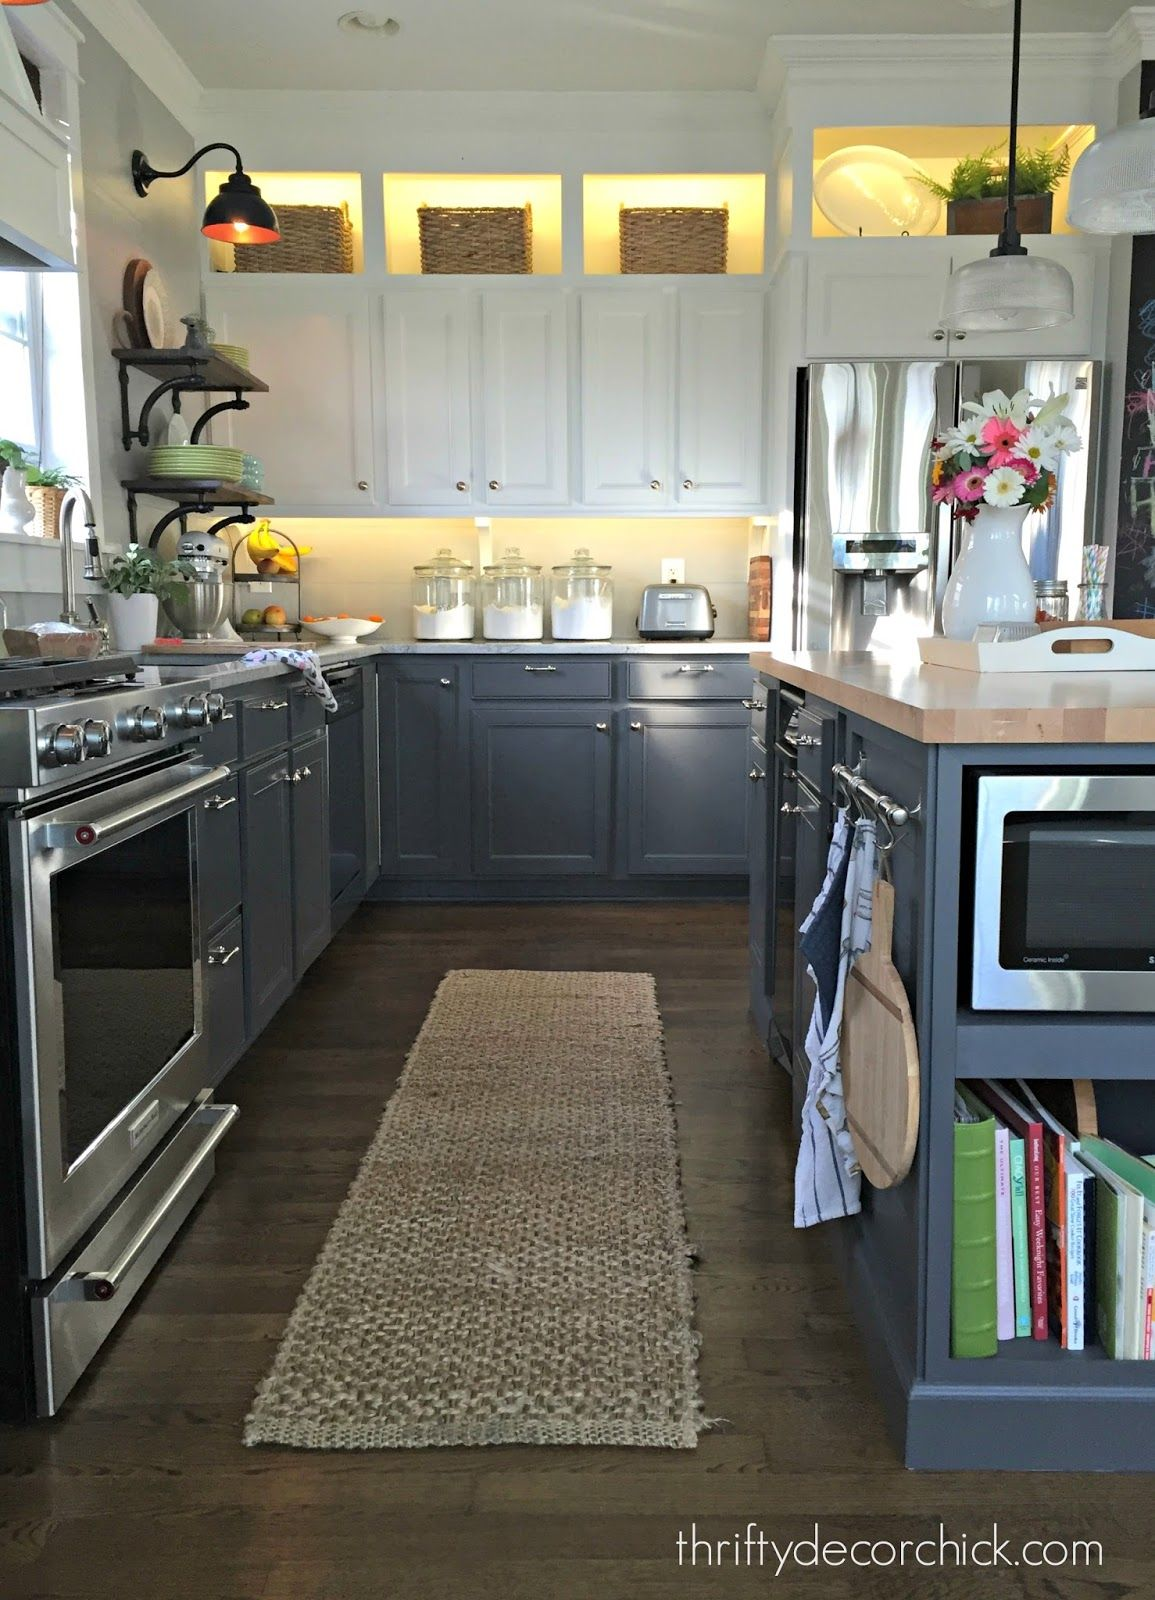 Adding accent lights to cabinets | Above kitchen cabinets ...